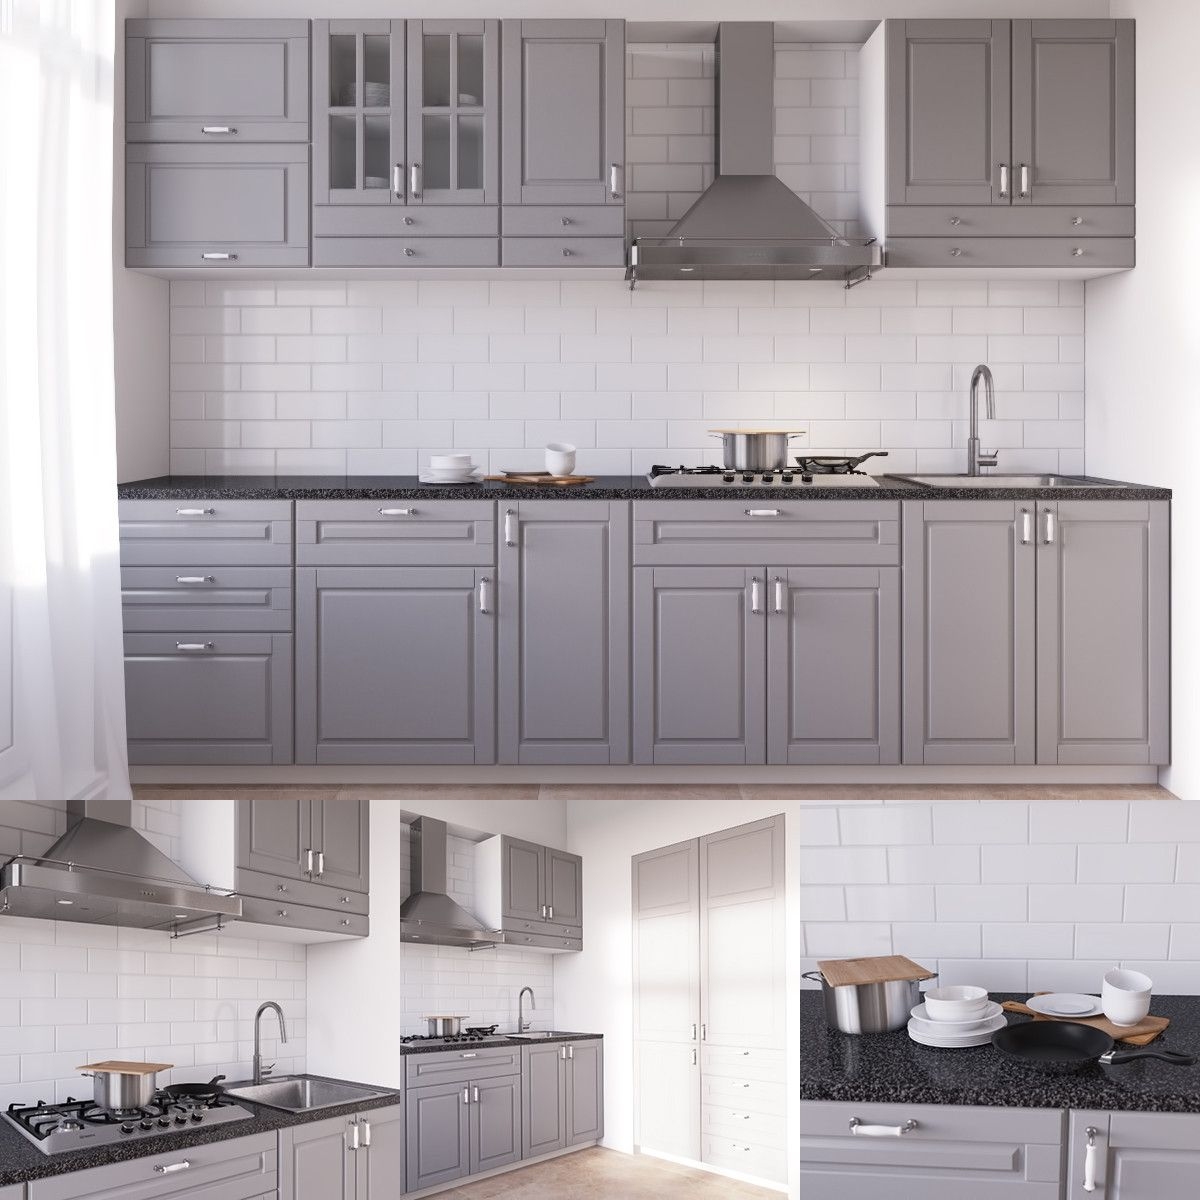 Ikea Kitchen Bodbyn Grey: Ikea Bodbyn 3D Model - 3D Model